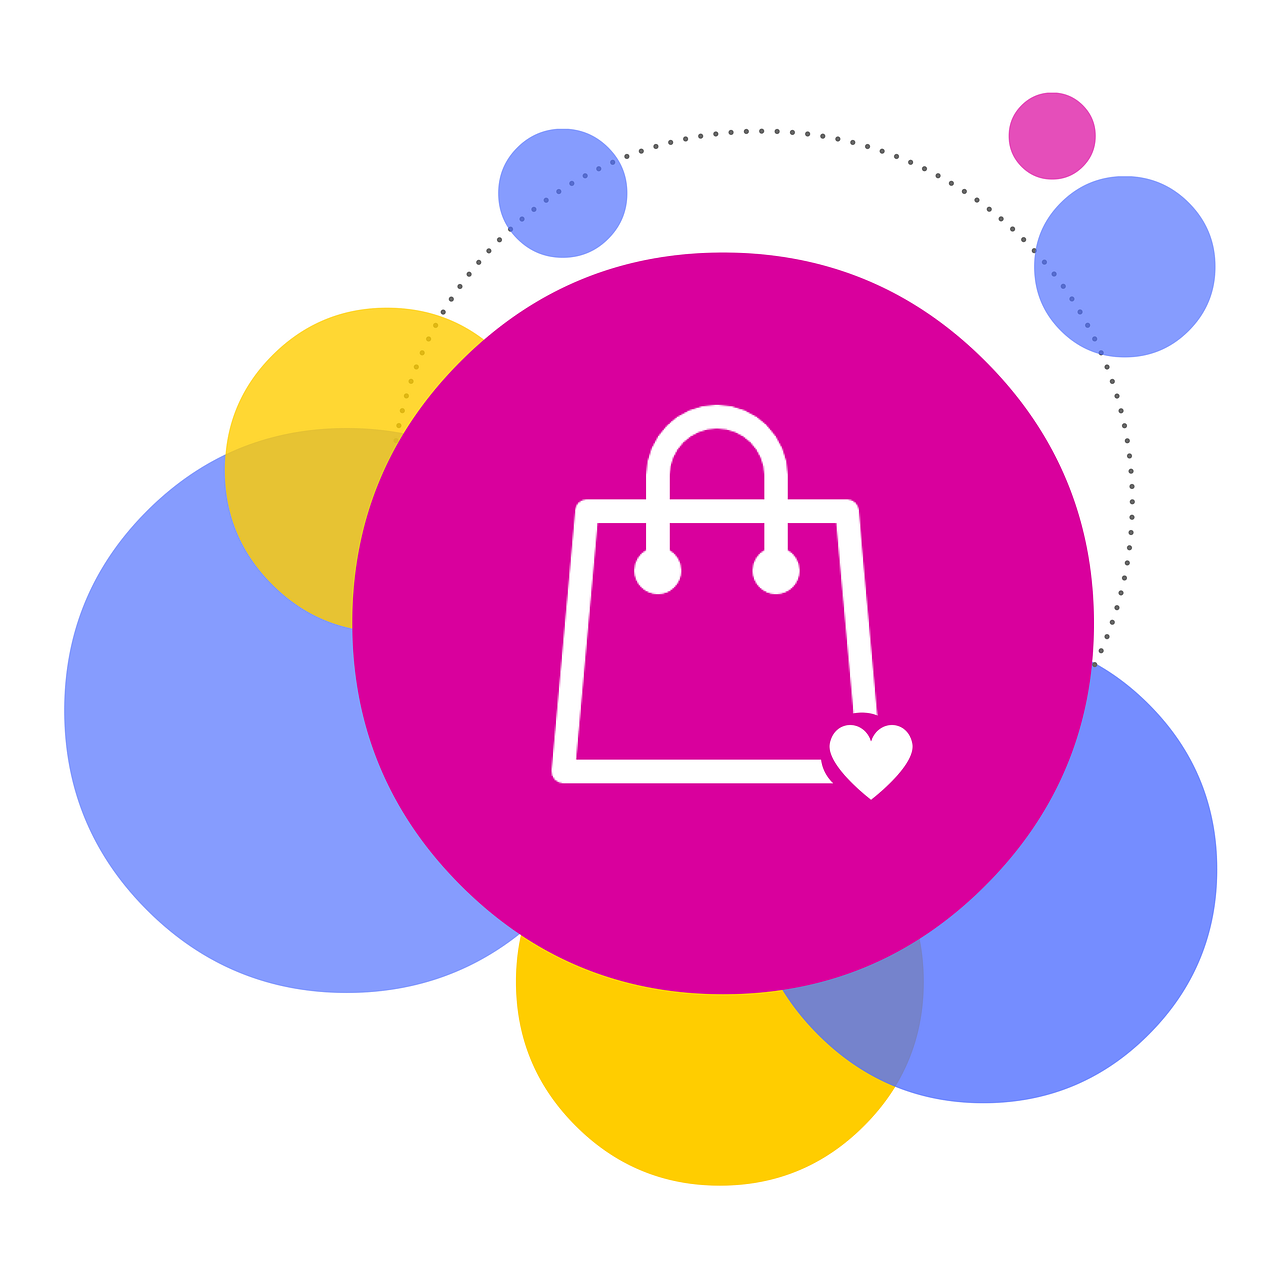 bubbles, shopping, website icons-1962355.jpg